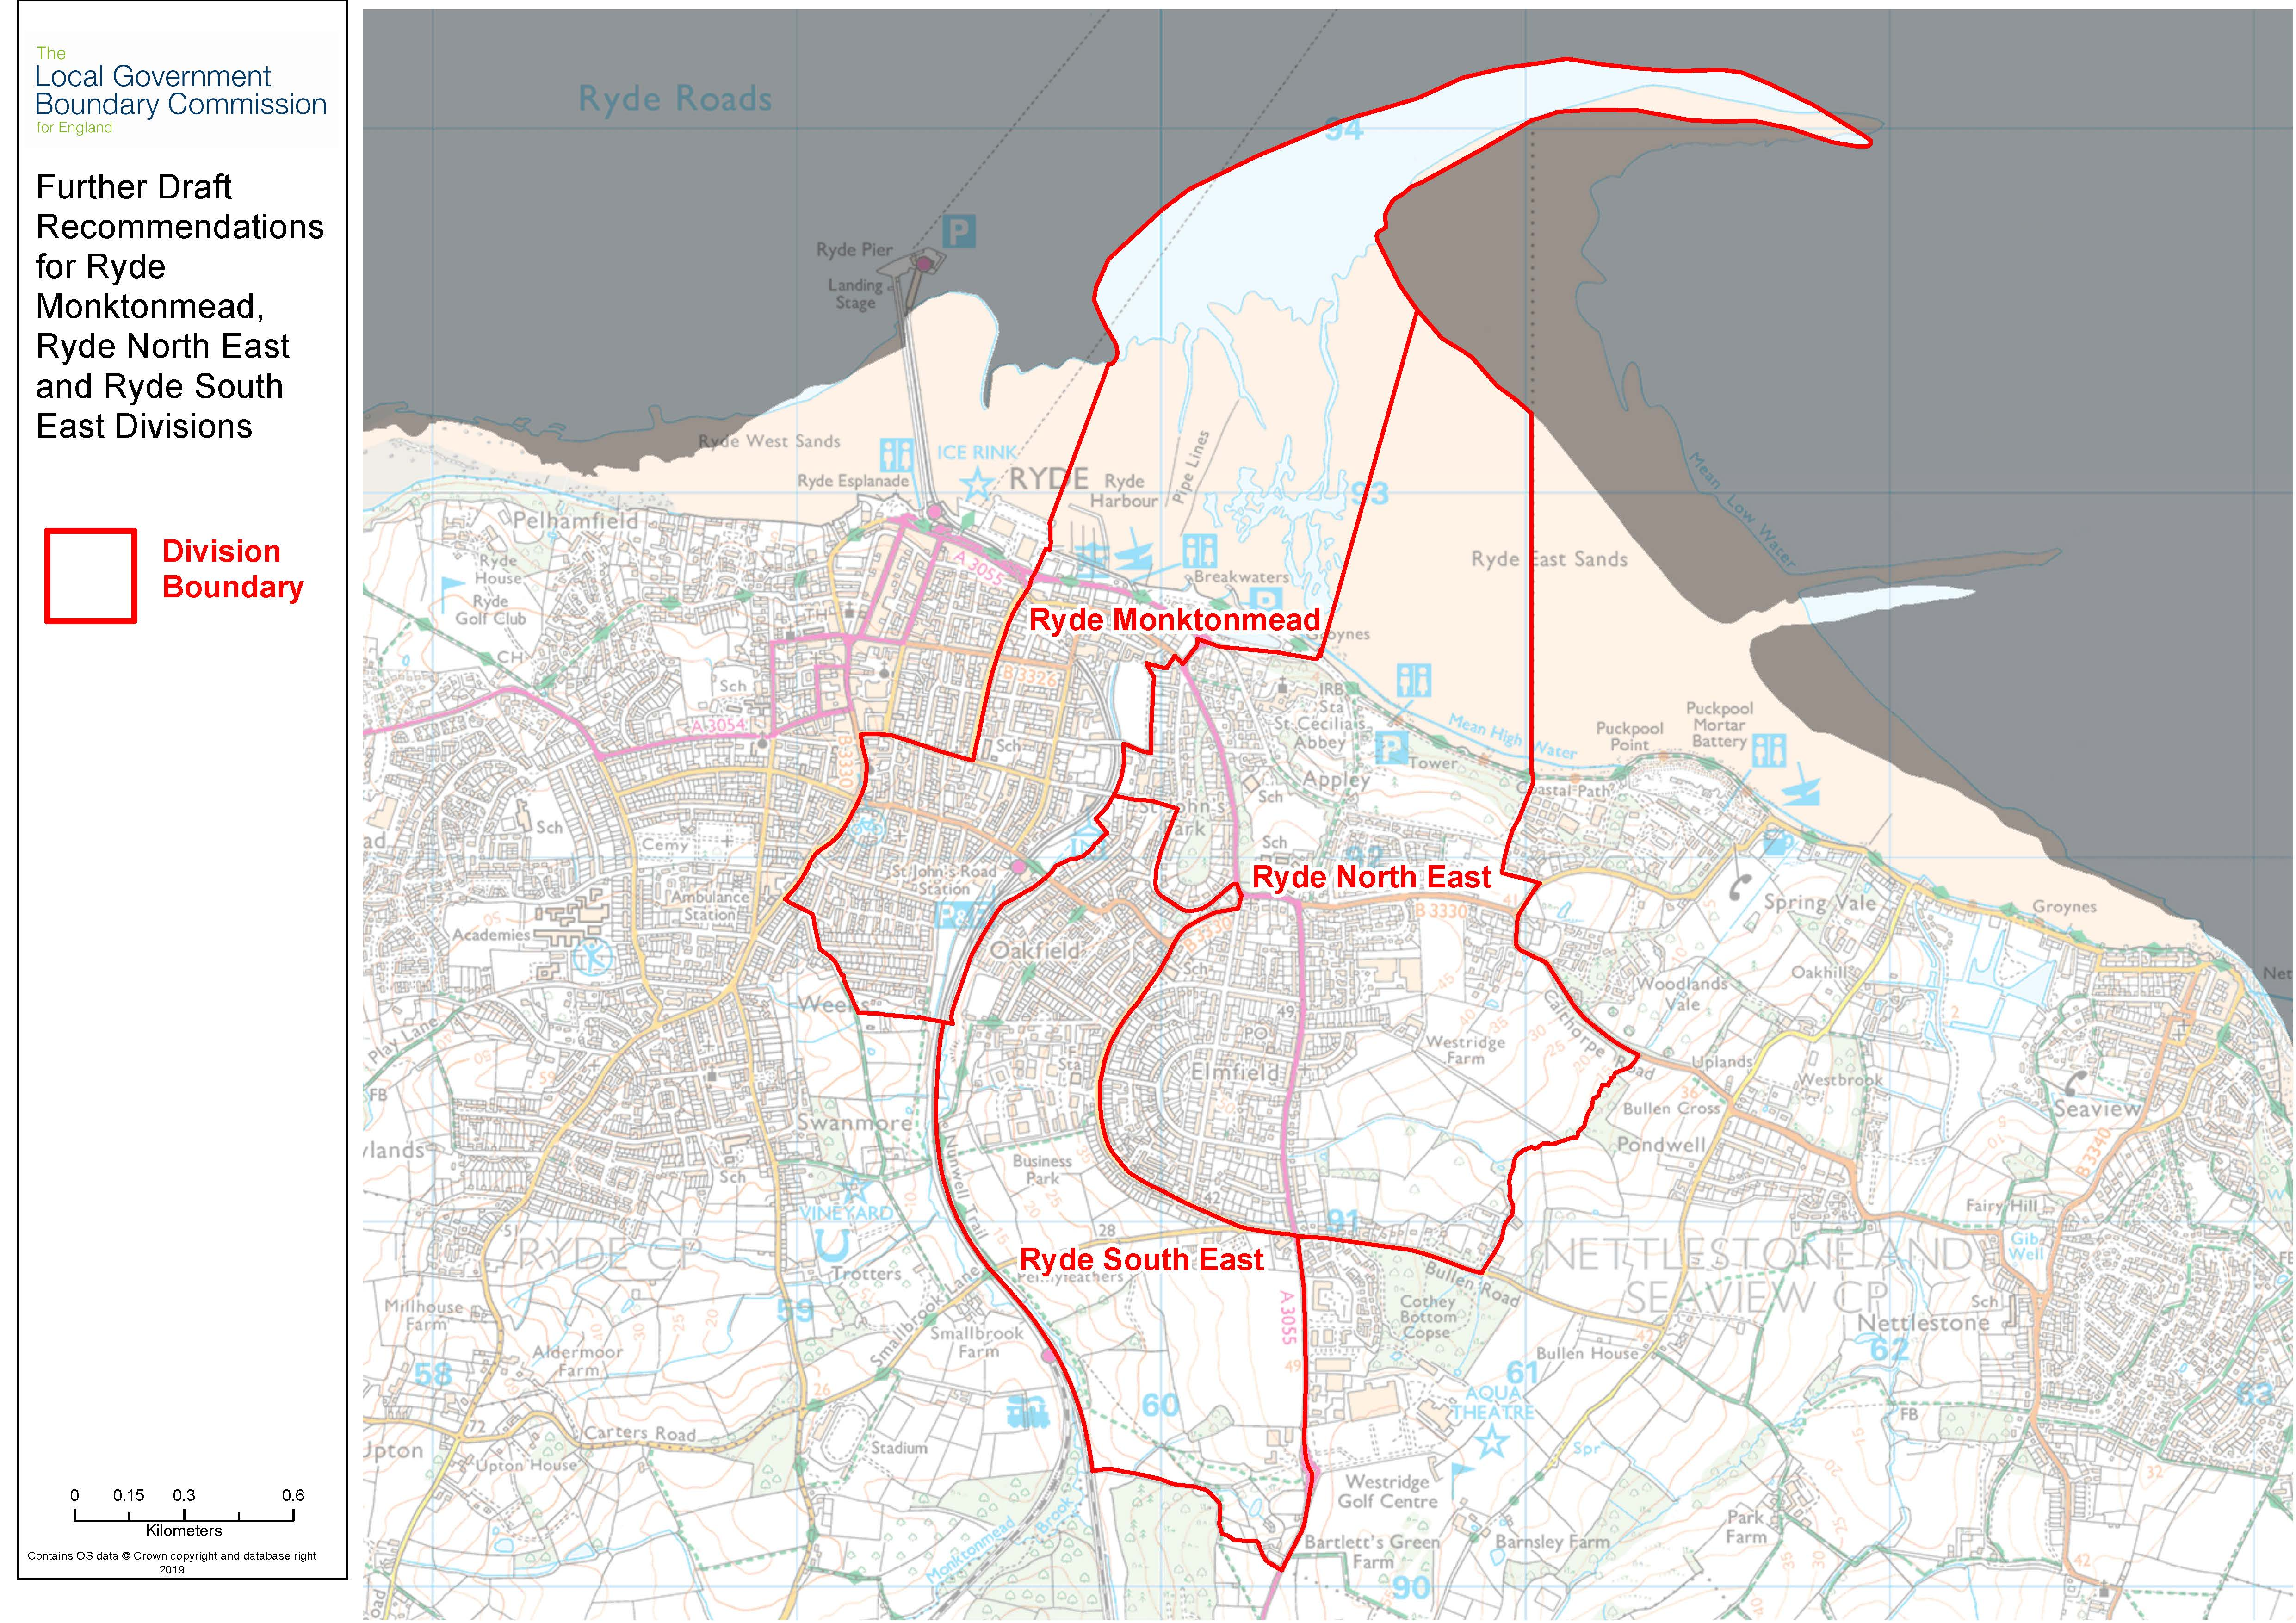 Further draft recommendations mapping for Ryde